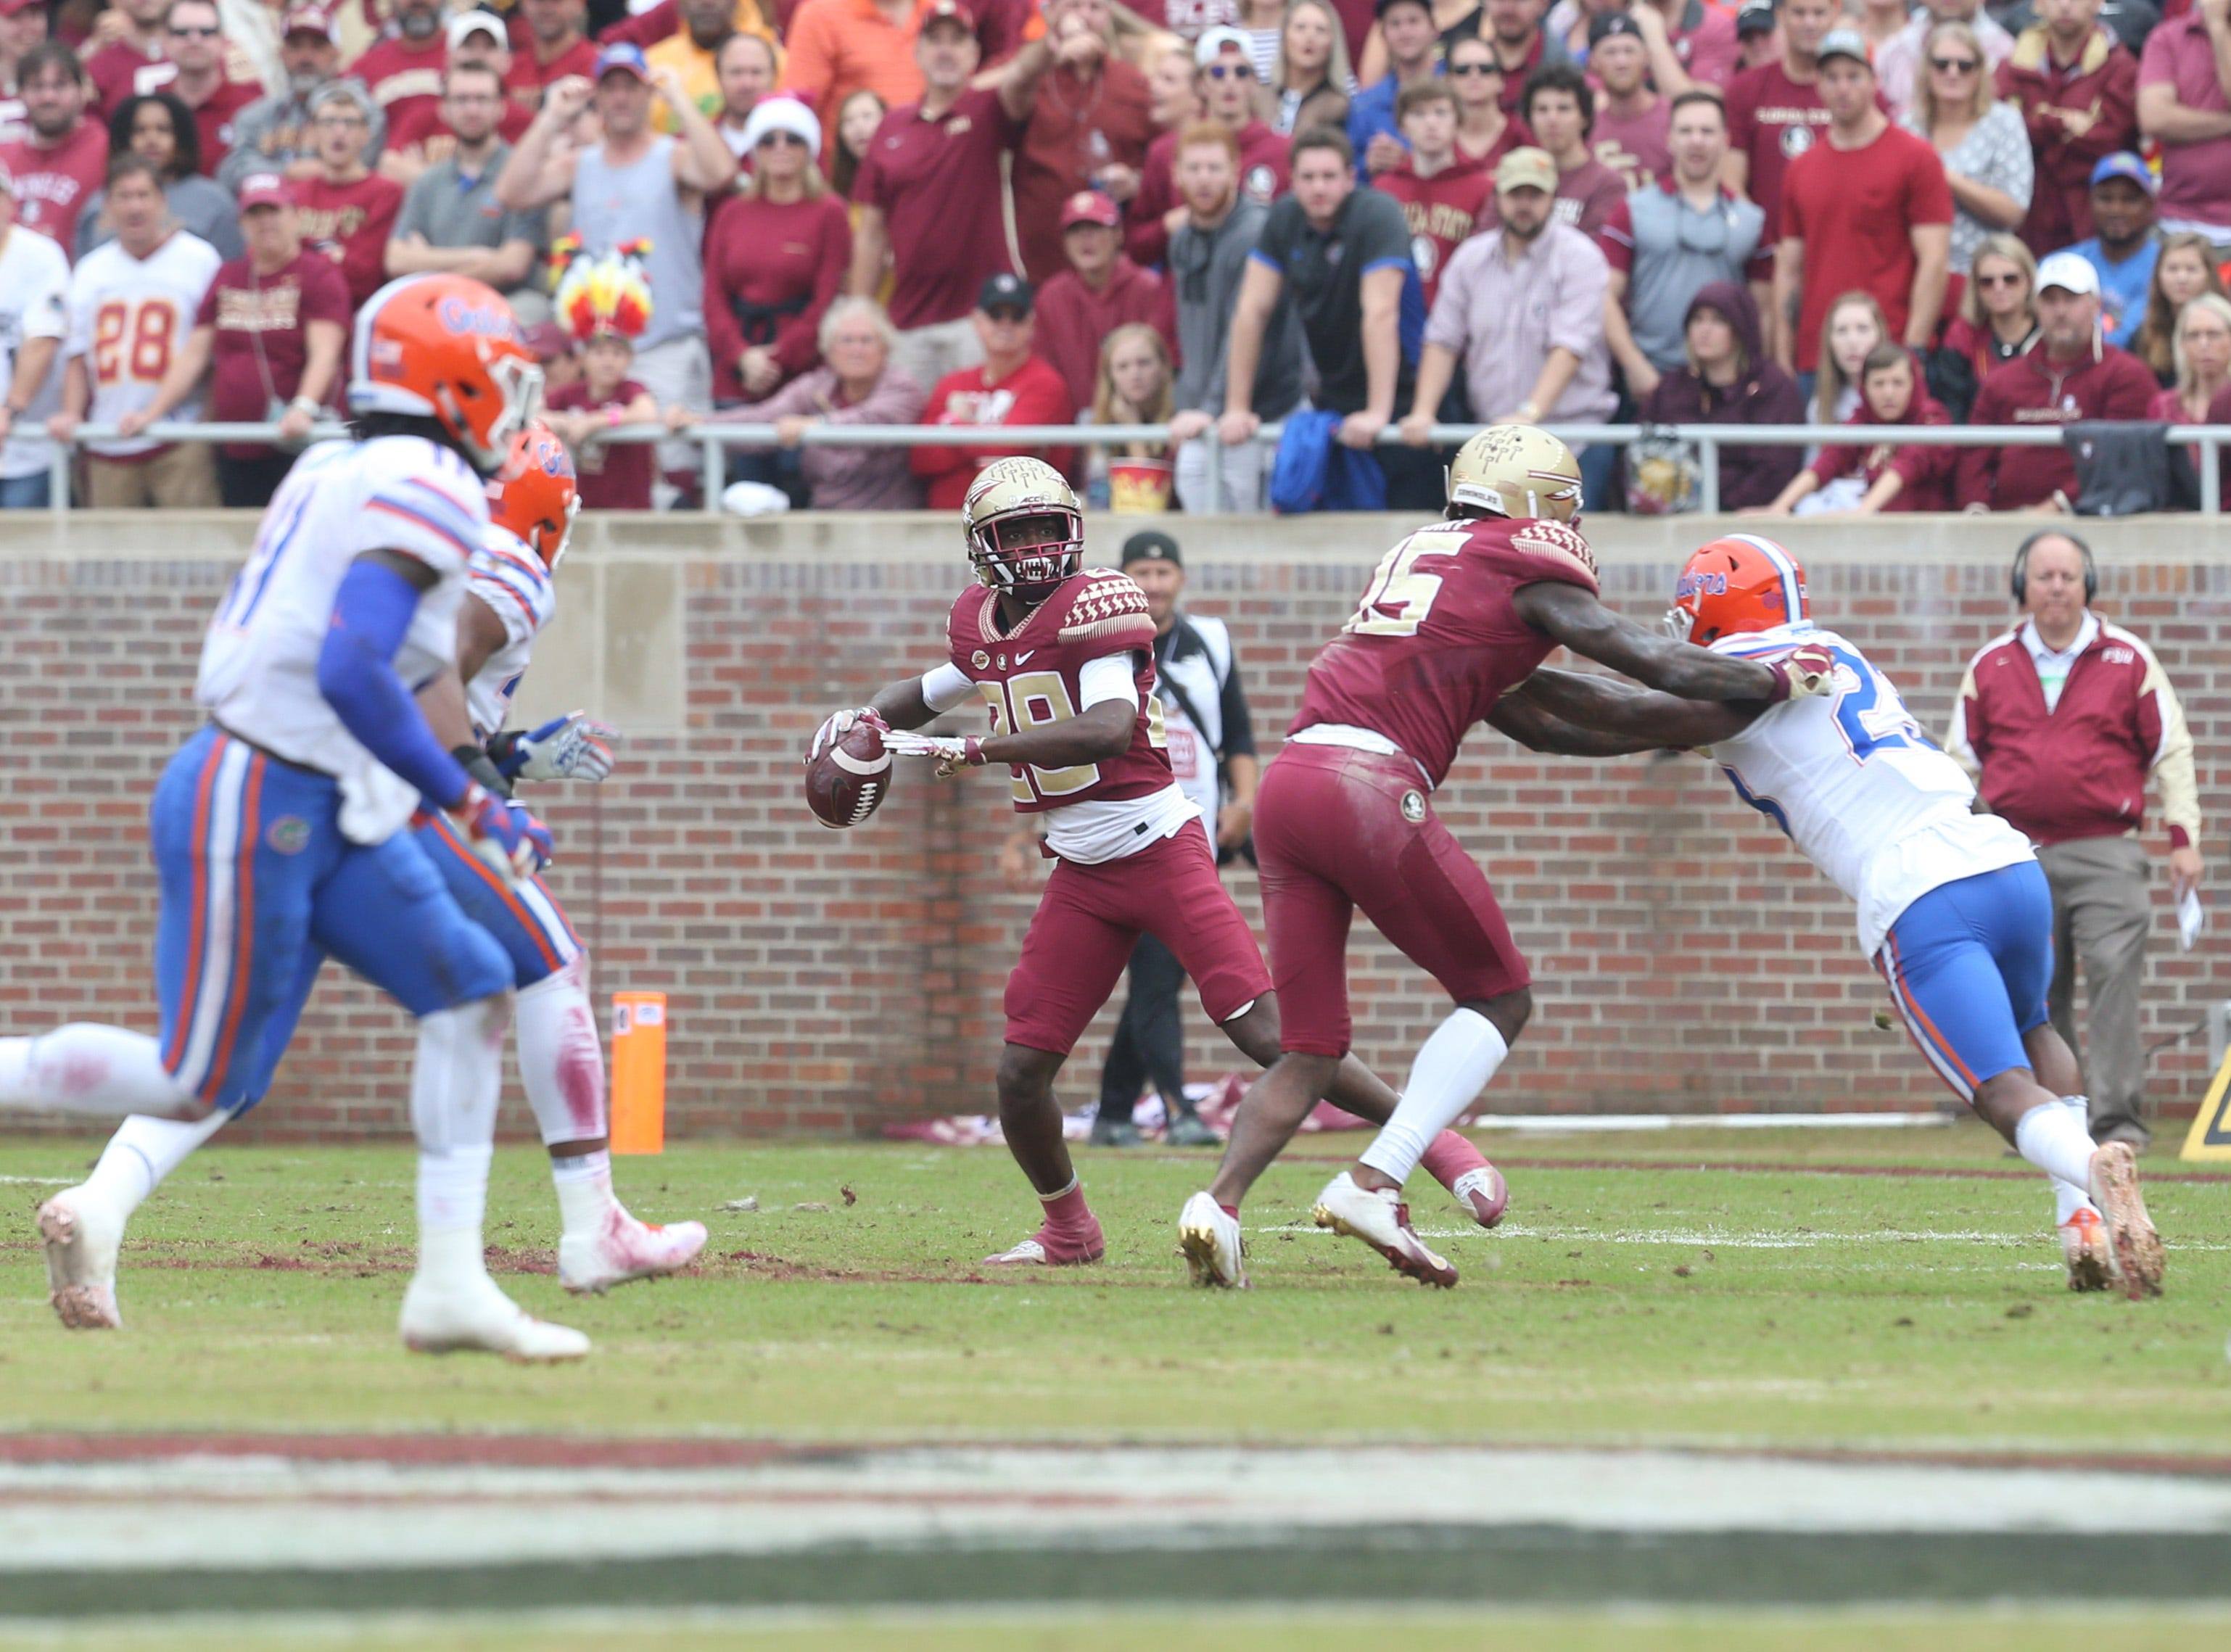 Florida State Seminoles wide receiver D.J. Matthews (29) attempts to pass as the Florida State Seminoles take on their rival the Florida Gators in college football at Doak S. Campbell Stadium, Saturday, Nov. 24, 2018.